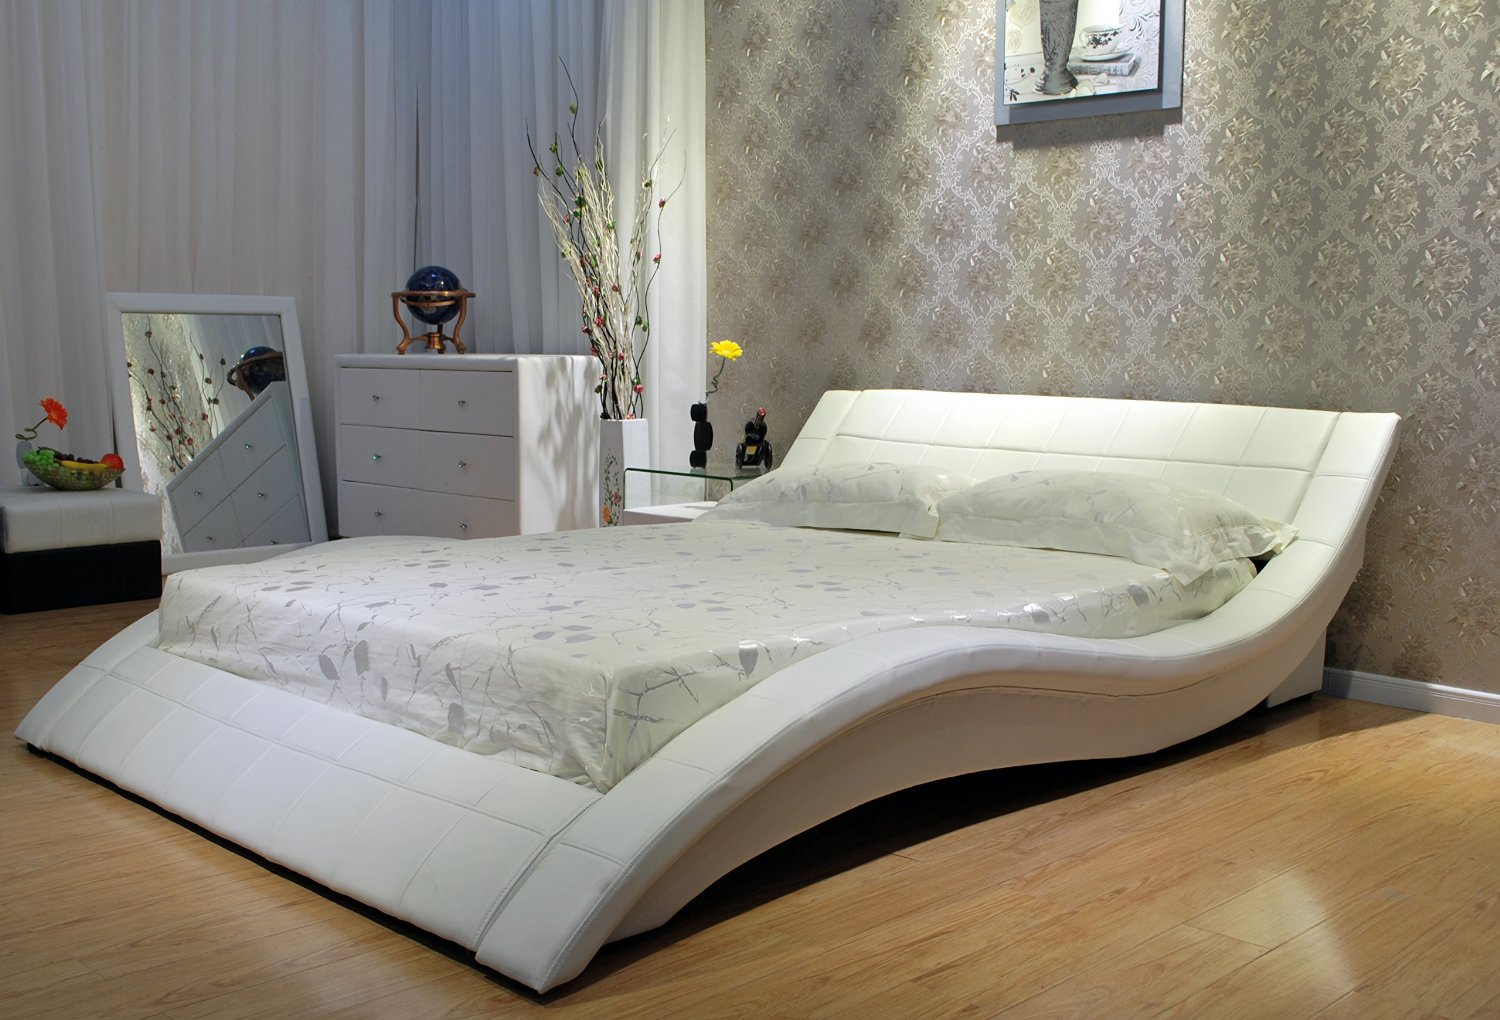 virtuemart_product_gth-b1041-wave-queen-white-bed